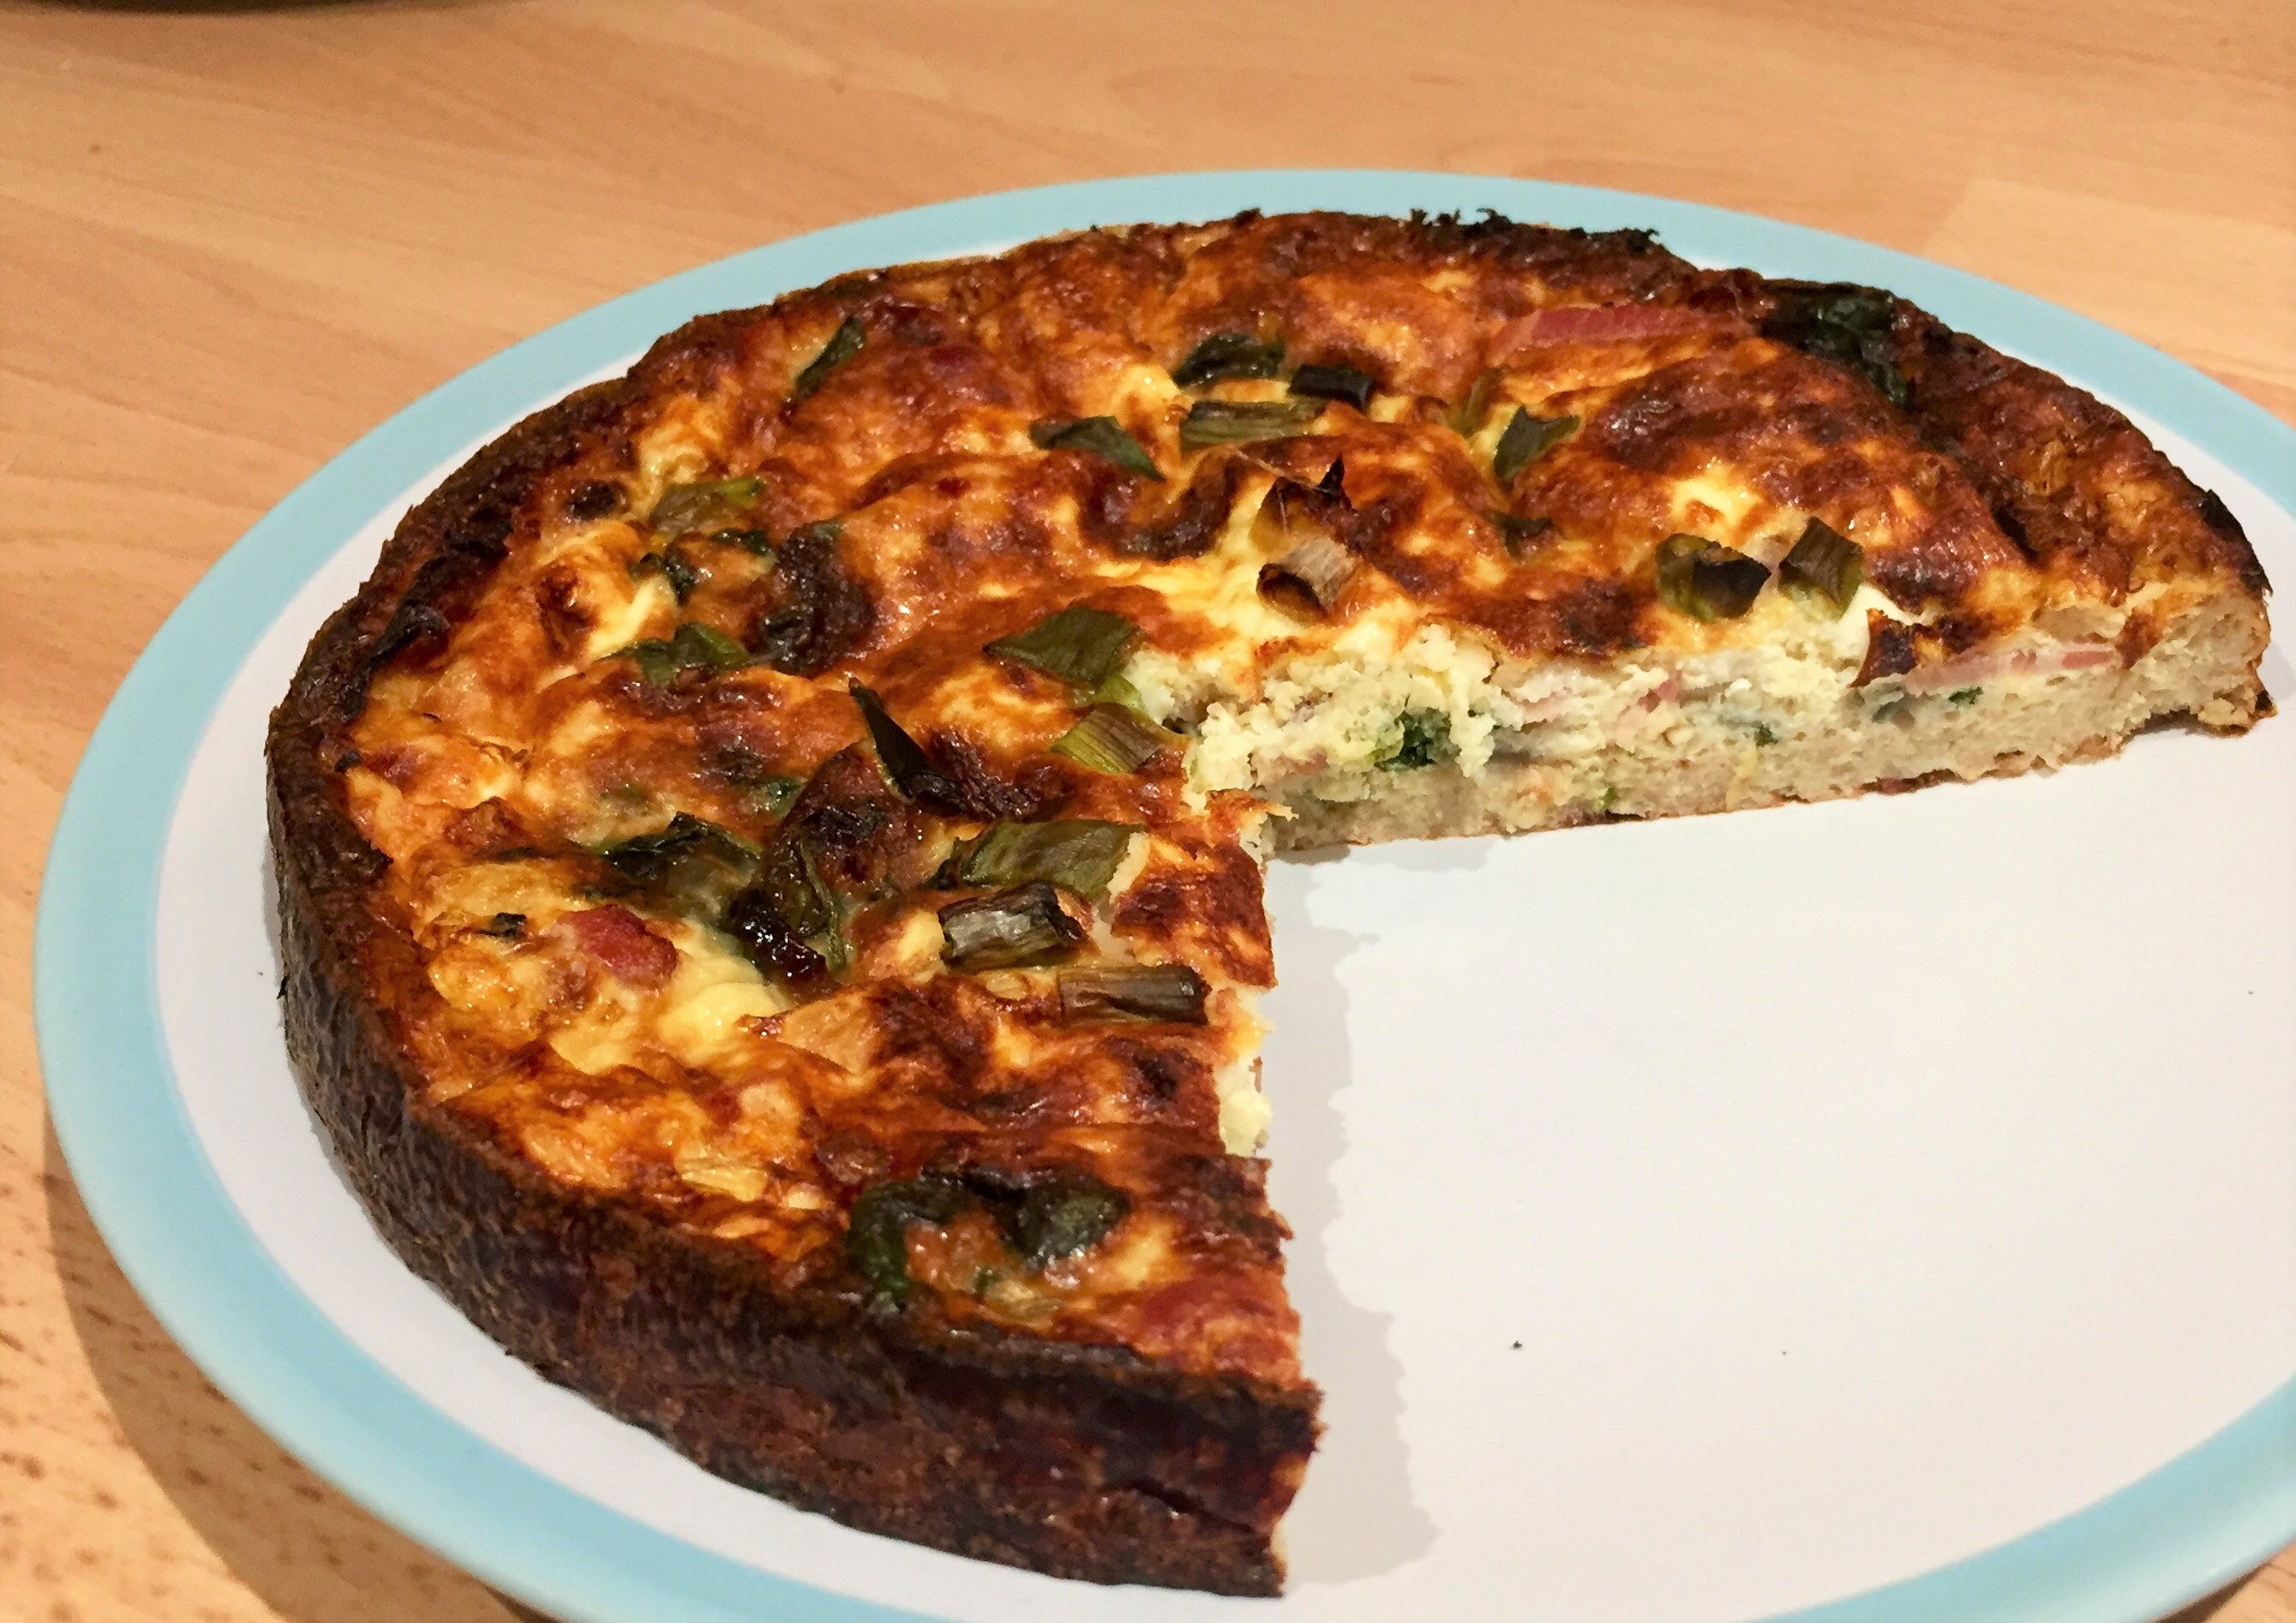 Cauli Crust Quiche for Non-Cauli Lovers or Non-Wheat Eaters